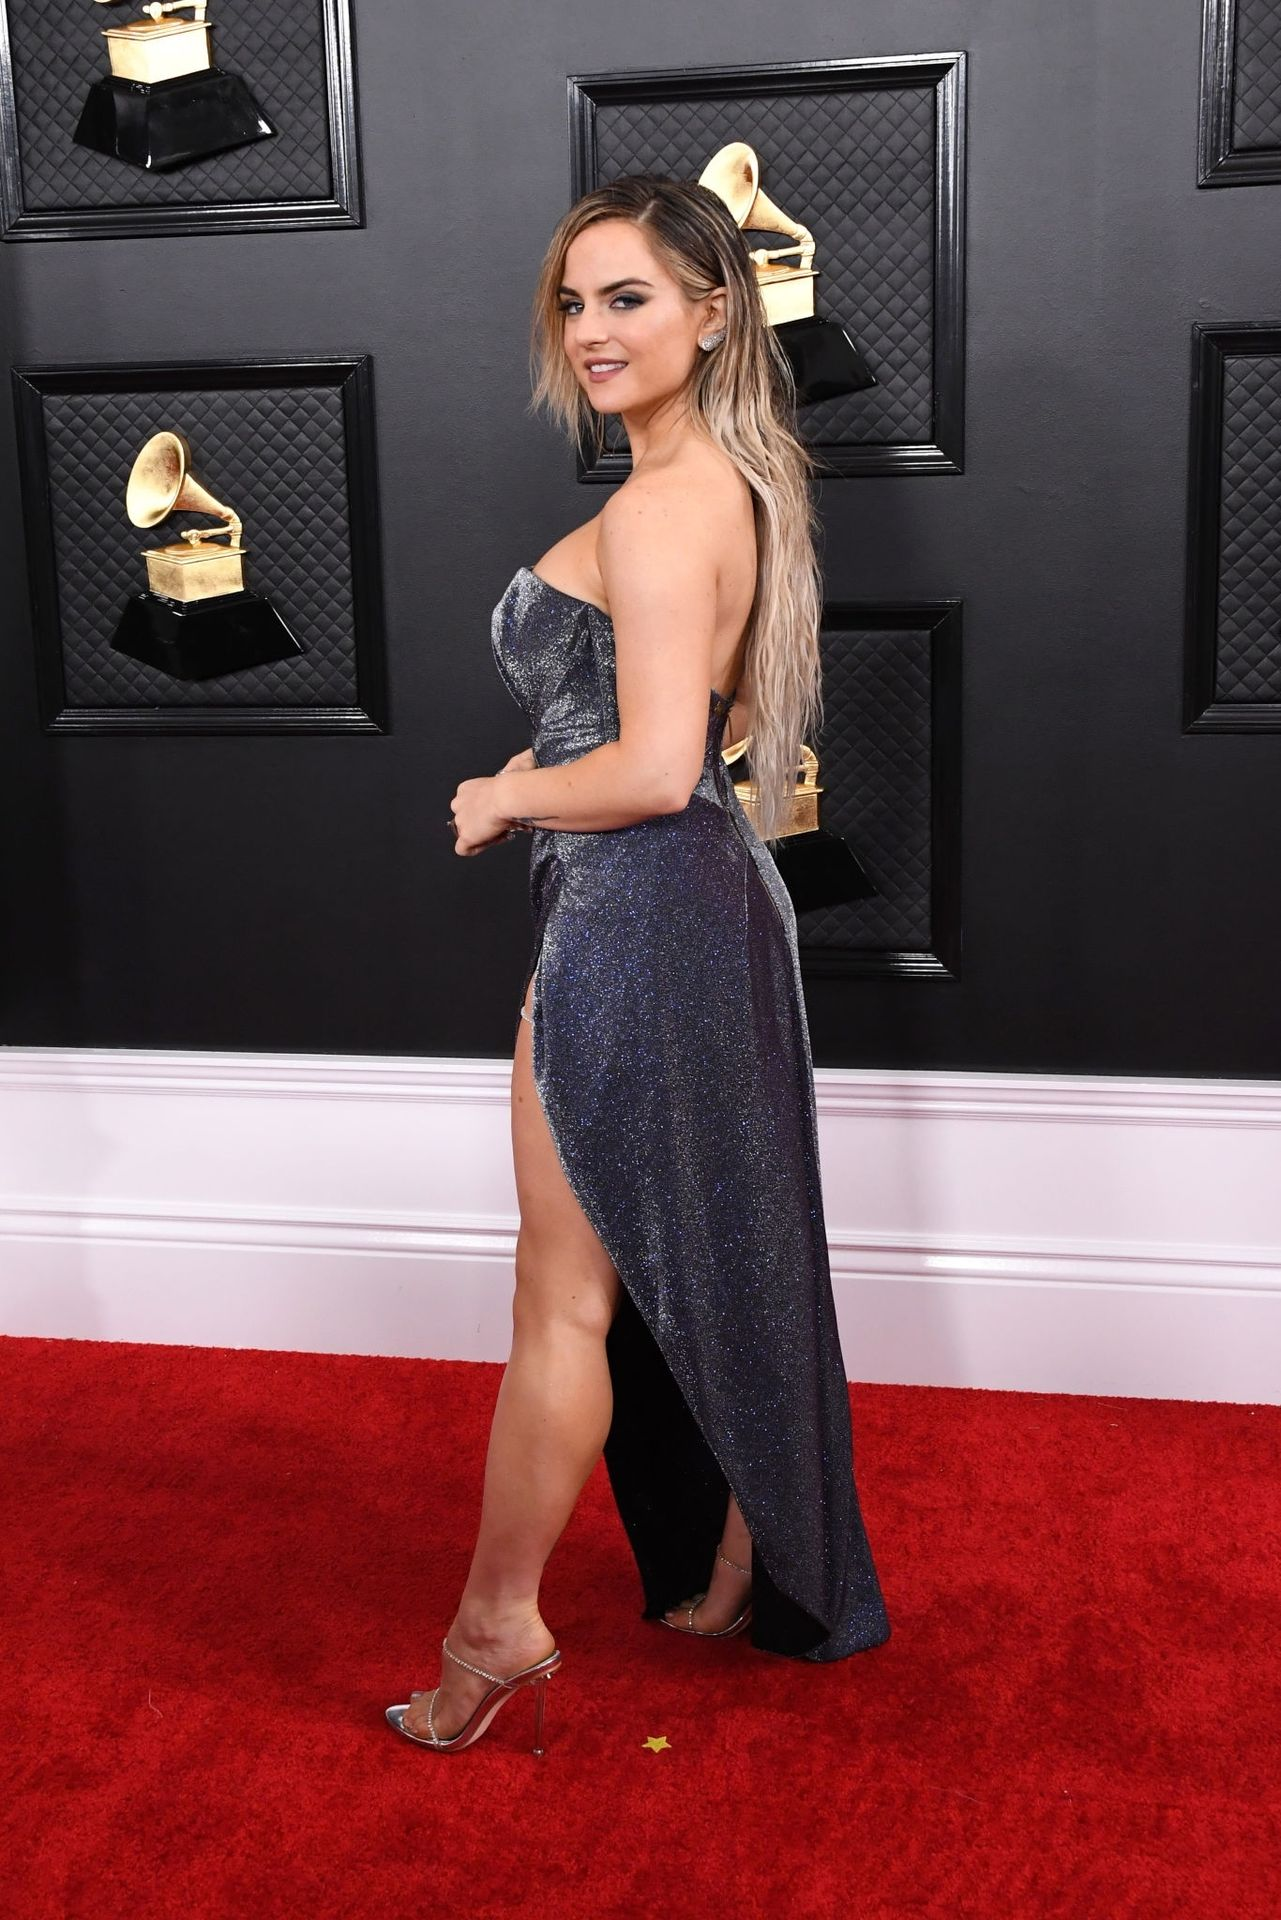 Jojo Shows Her Legs And Cleavage At The 62nd Annual Grammy Awards 0028